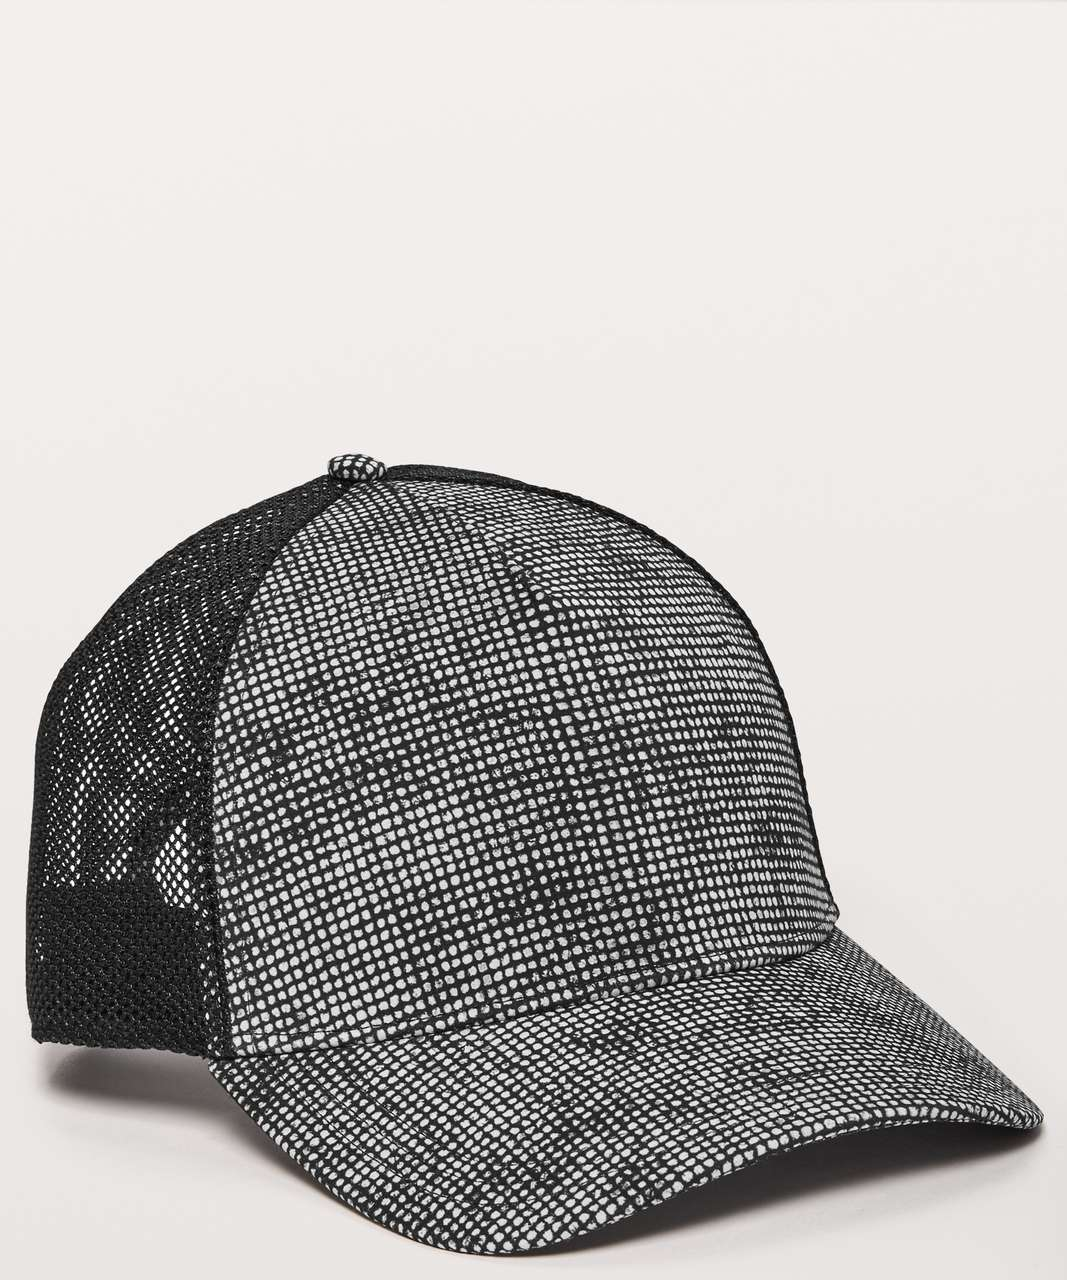 Lululemon Commission Hat - Cubed Ice Grey Black / Black